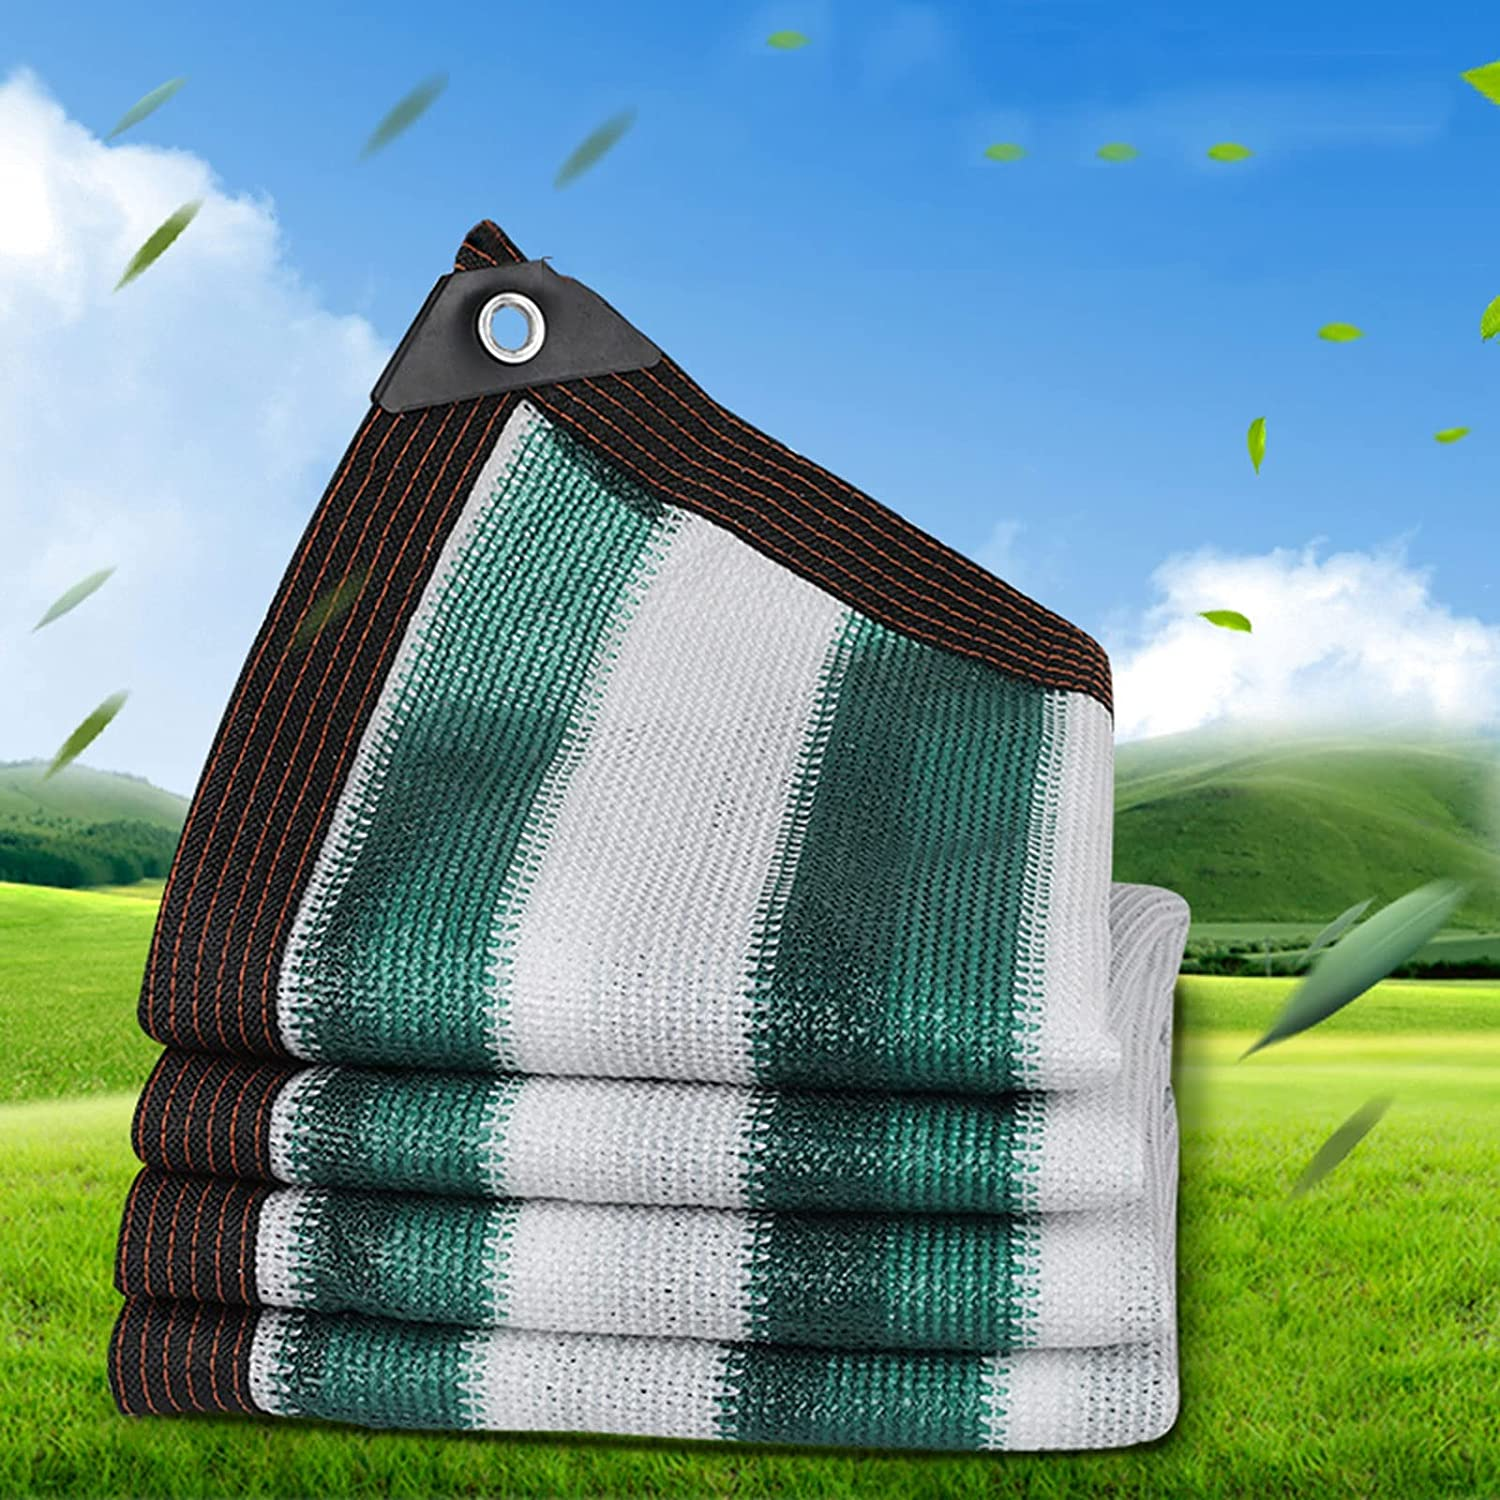 Shade Cloth Heat Challenge the lowest price of Japan Insulation Net Sun 85% Protection Cl Gifts for